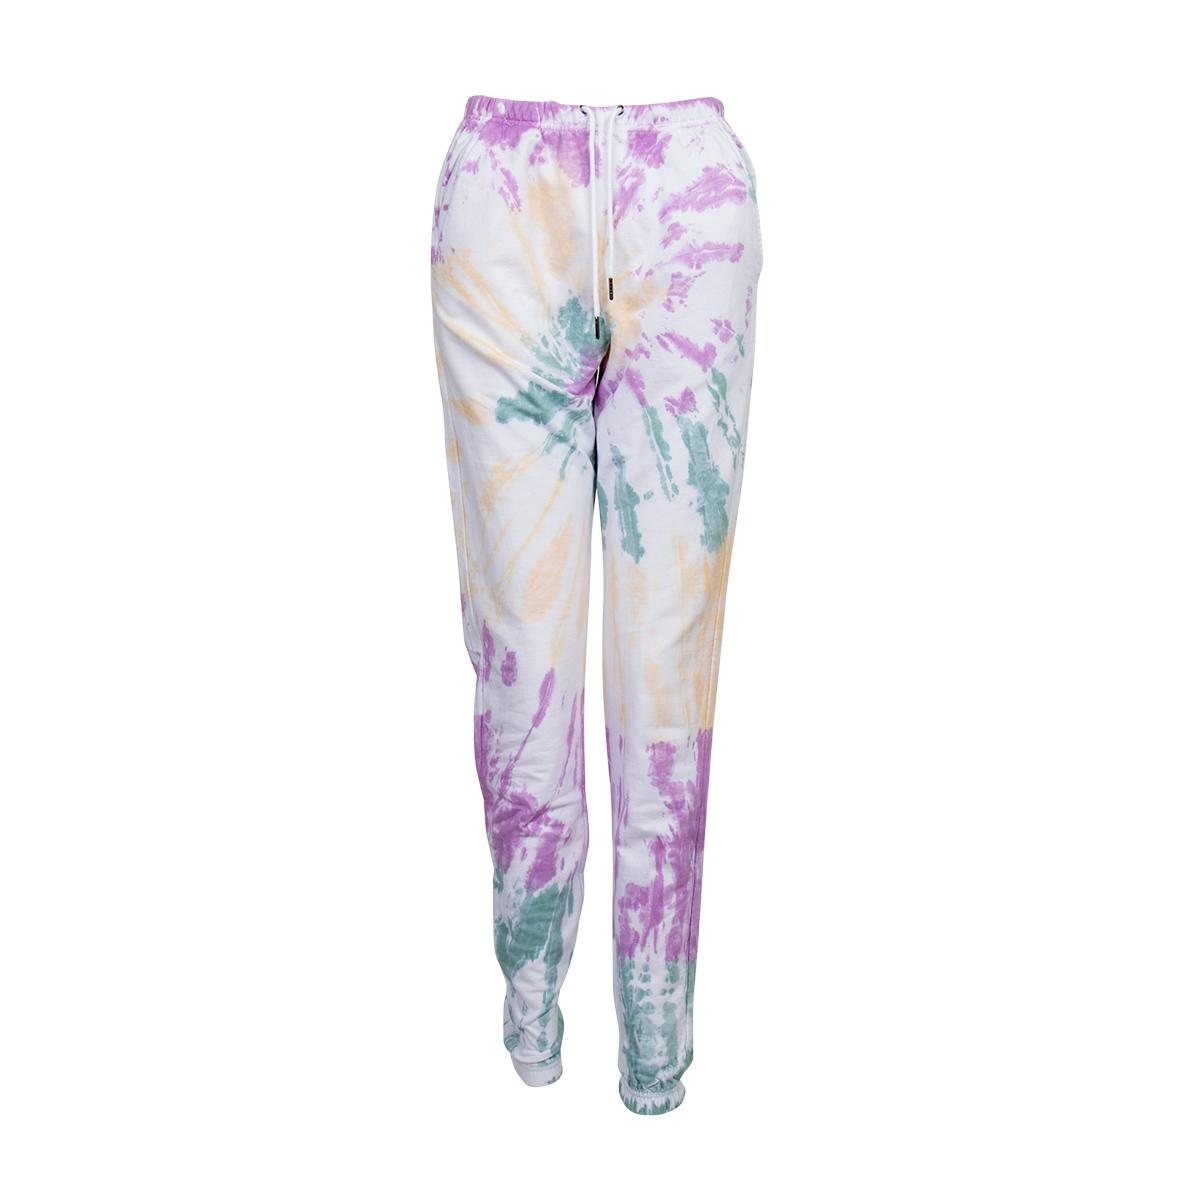 VIVA Tie Dye Women's Sweatpants